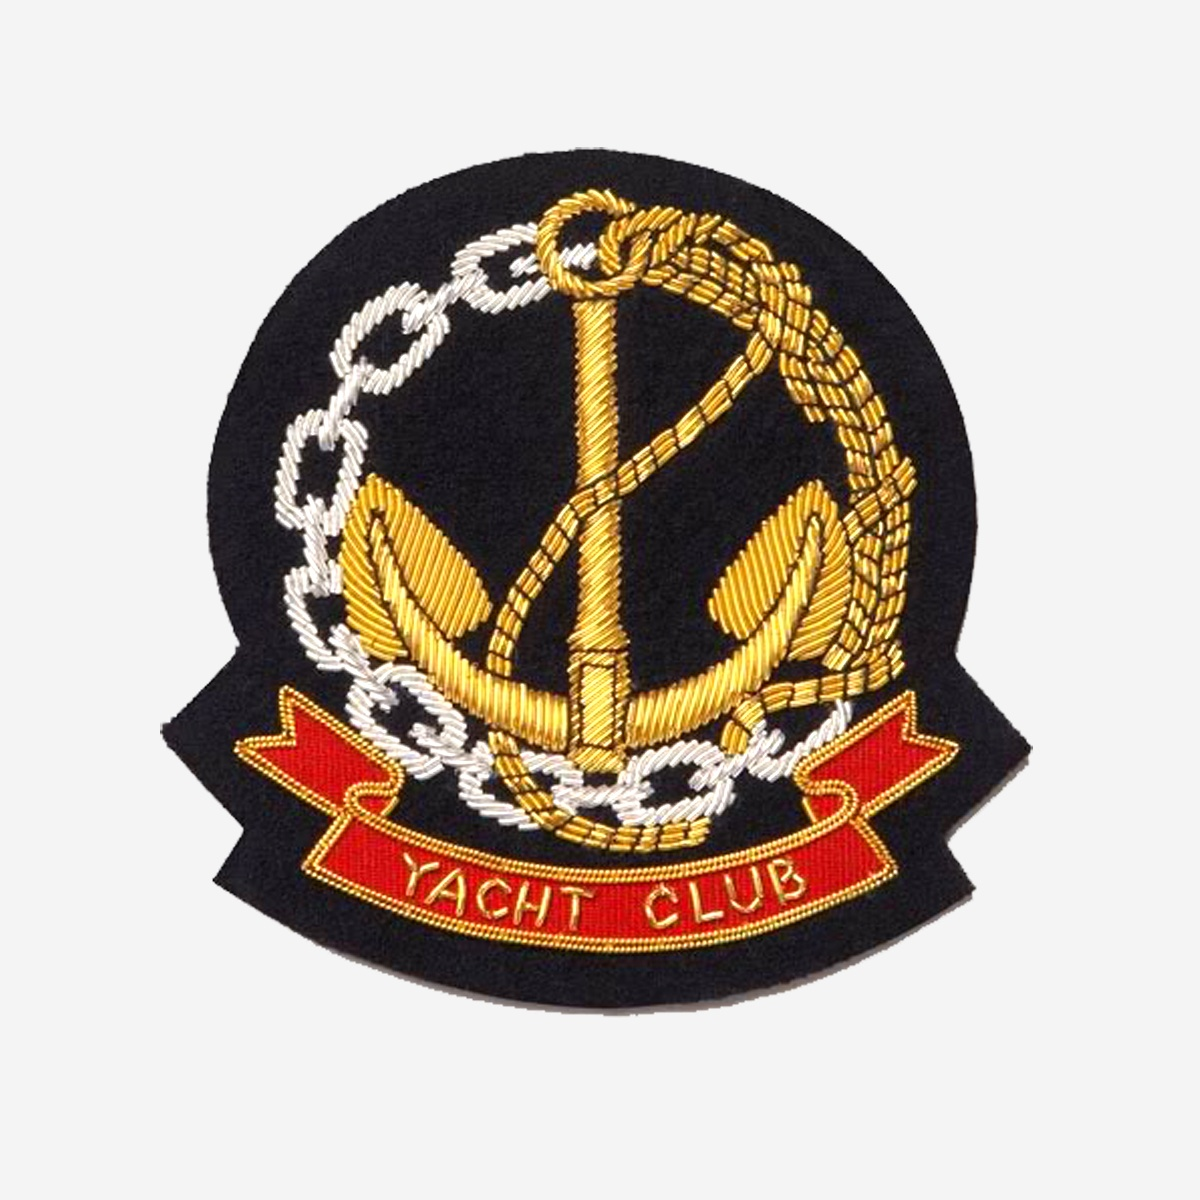 Yacht Club Gold Bullion Wire Embroidered Crest Badges